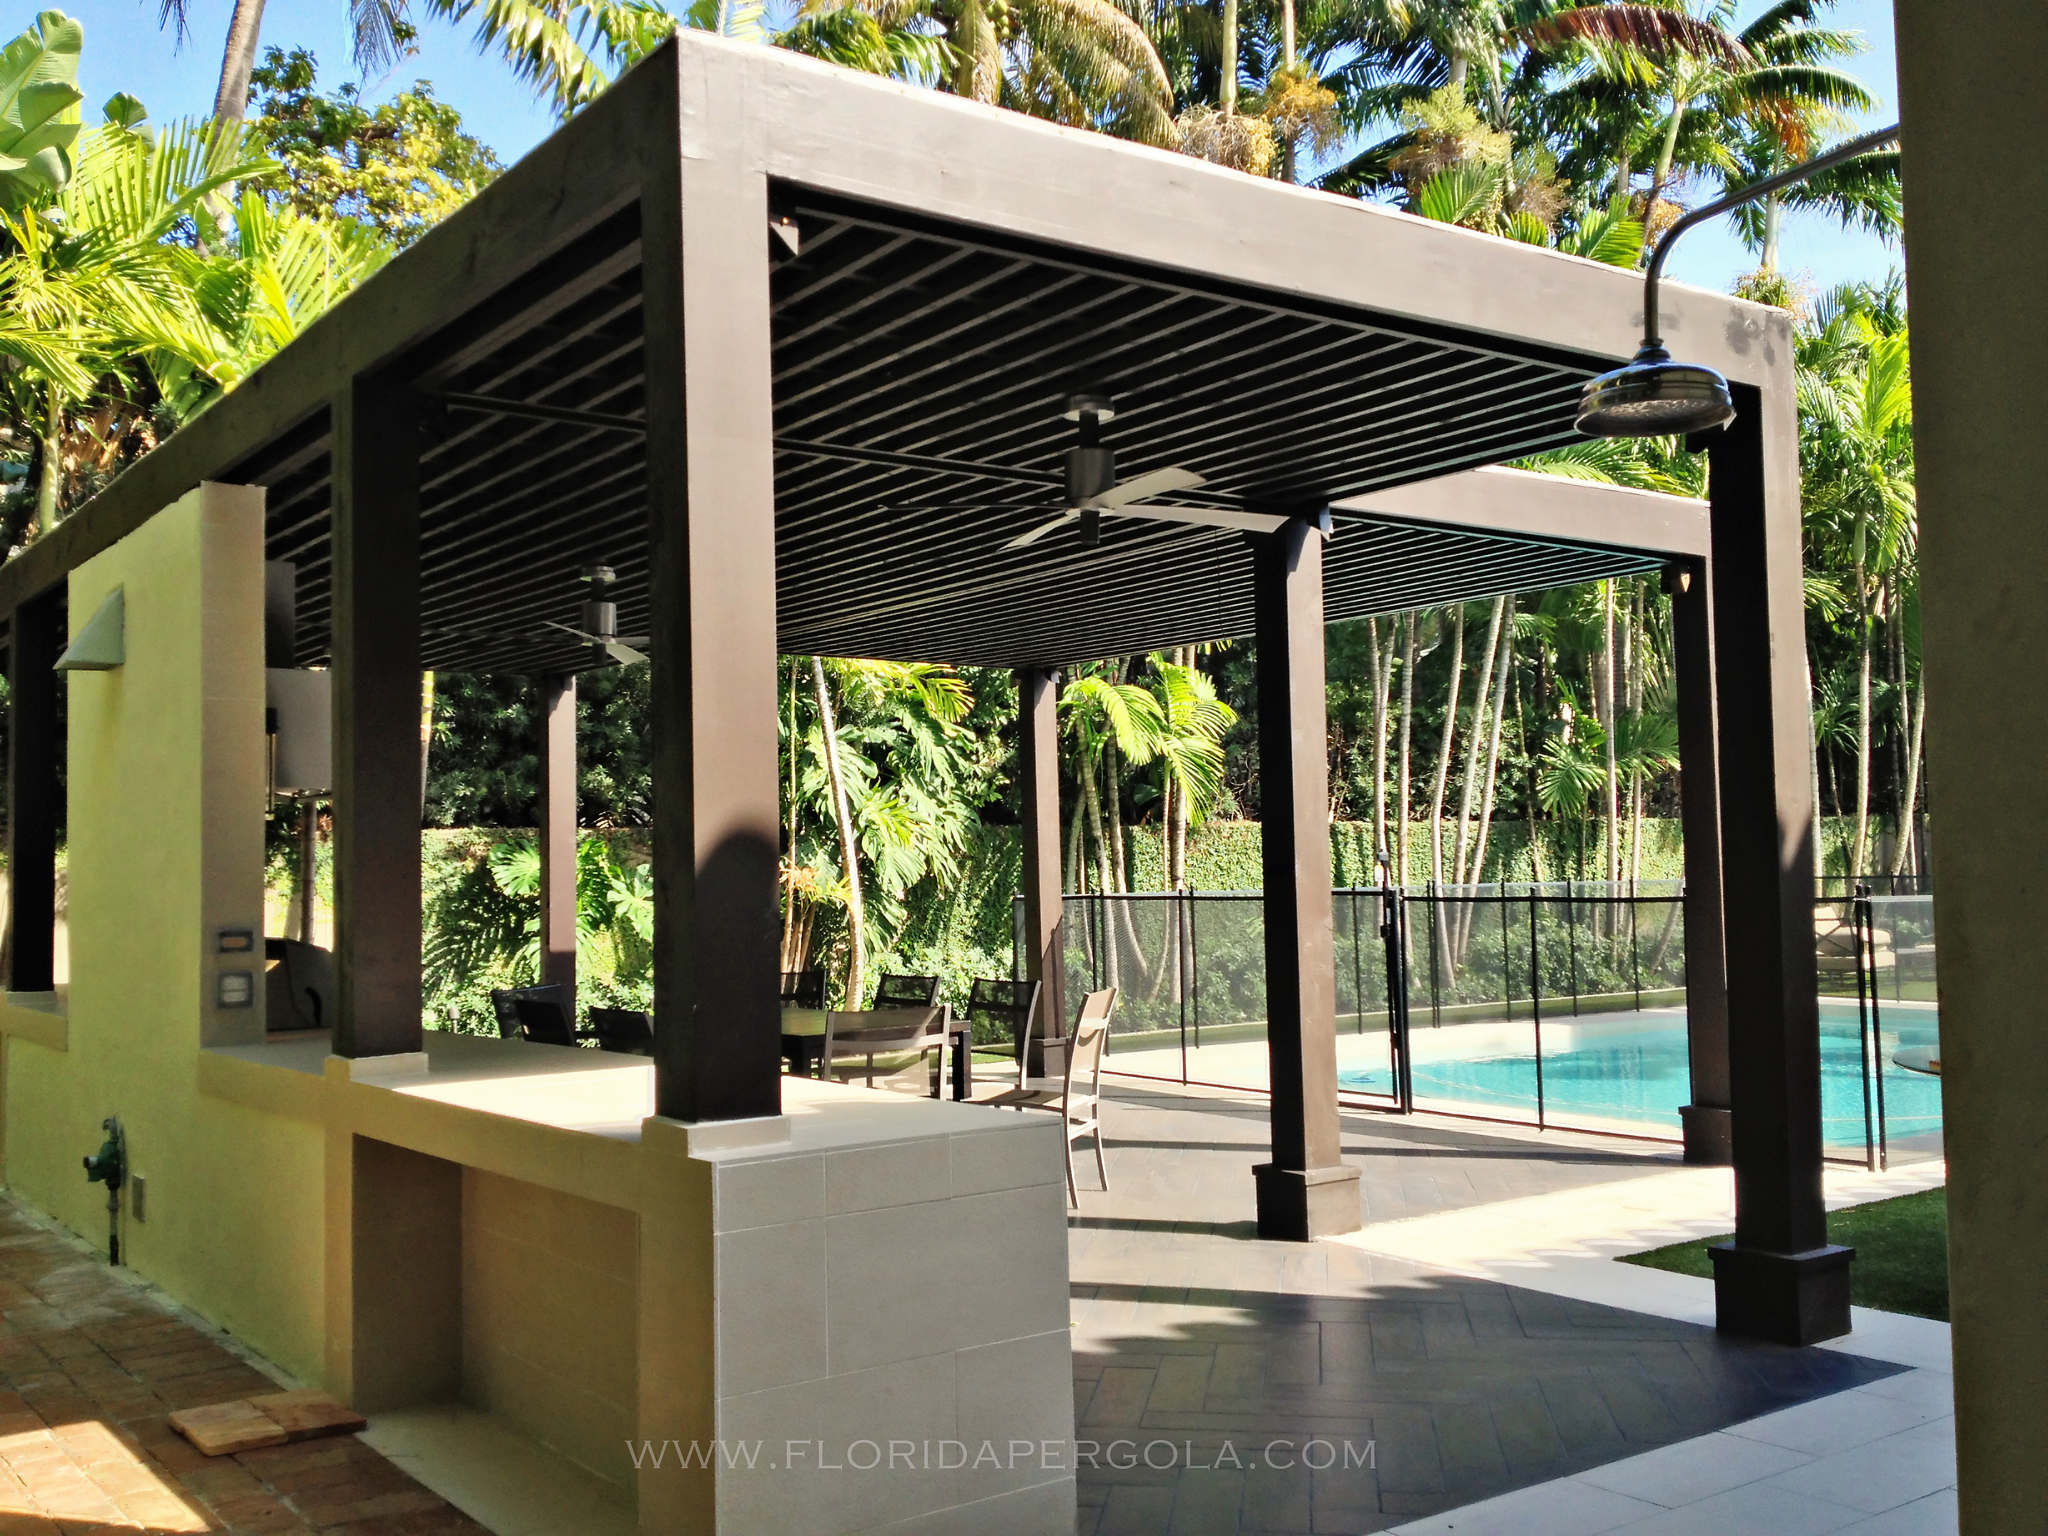 30 wonderful pergolas designs modern. Black Bedroom Furniture Sets. Home Design Ideas